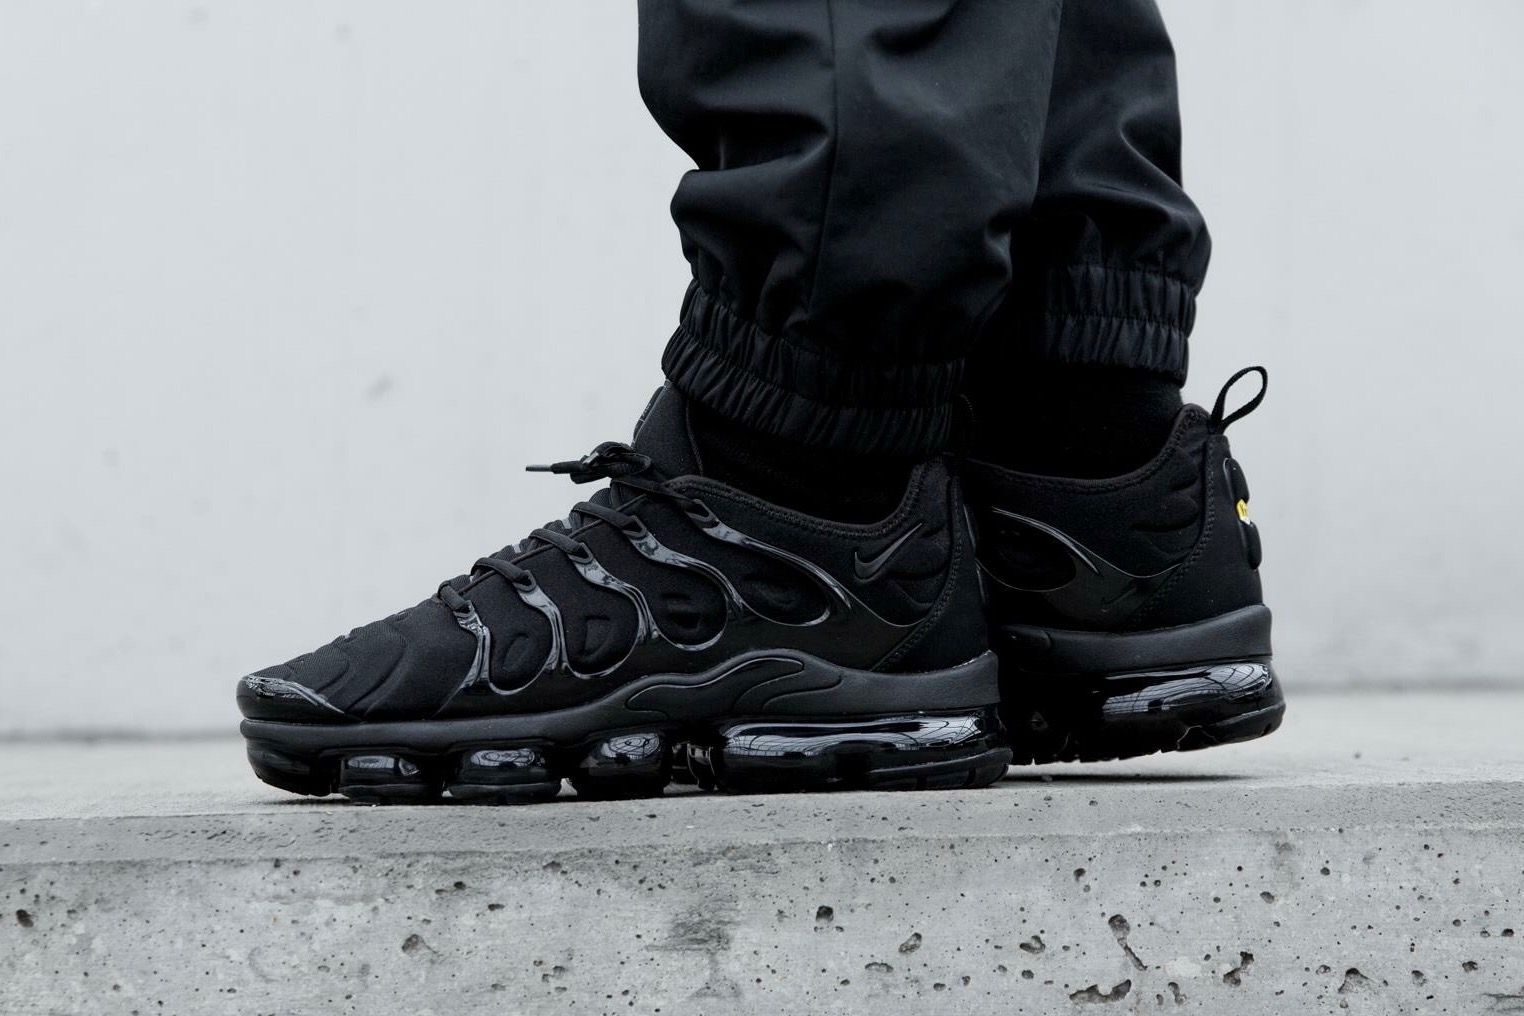 separation shoes 5f017 40645 Nike Air Vapormax Plus | Casual clothes | Nike outfits, Nike ...